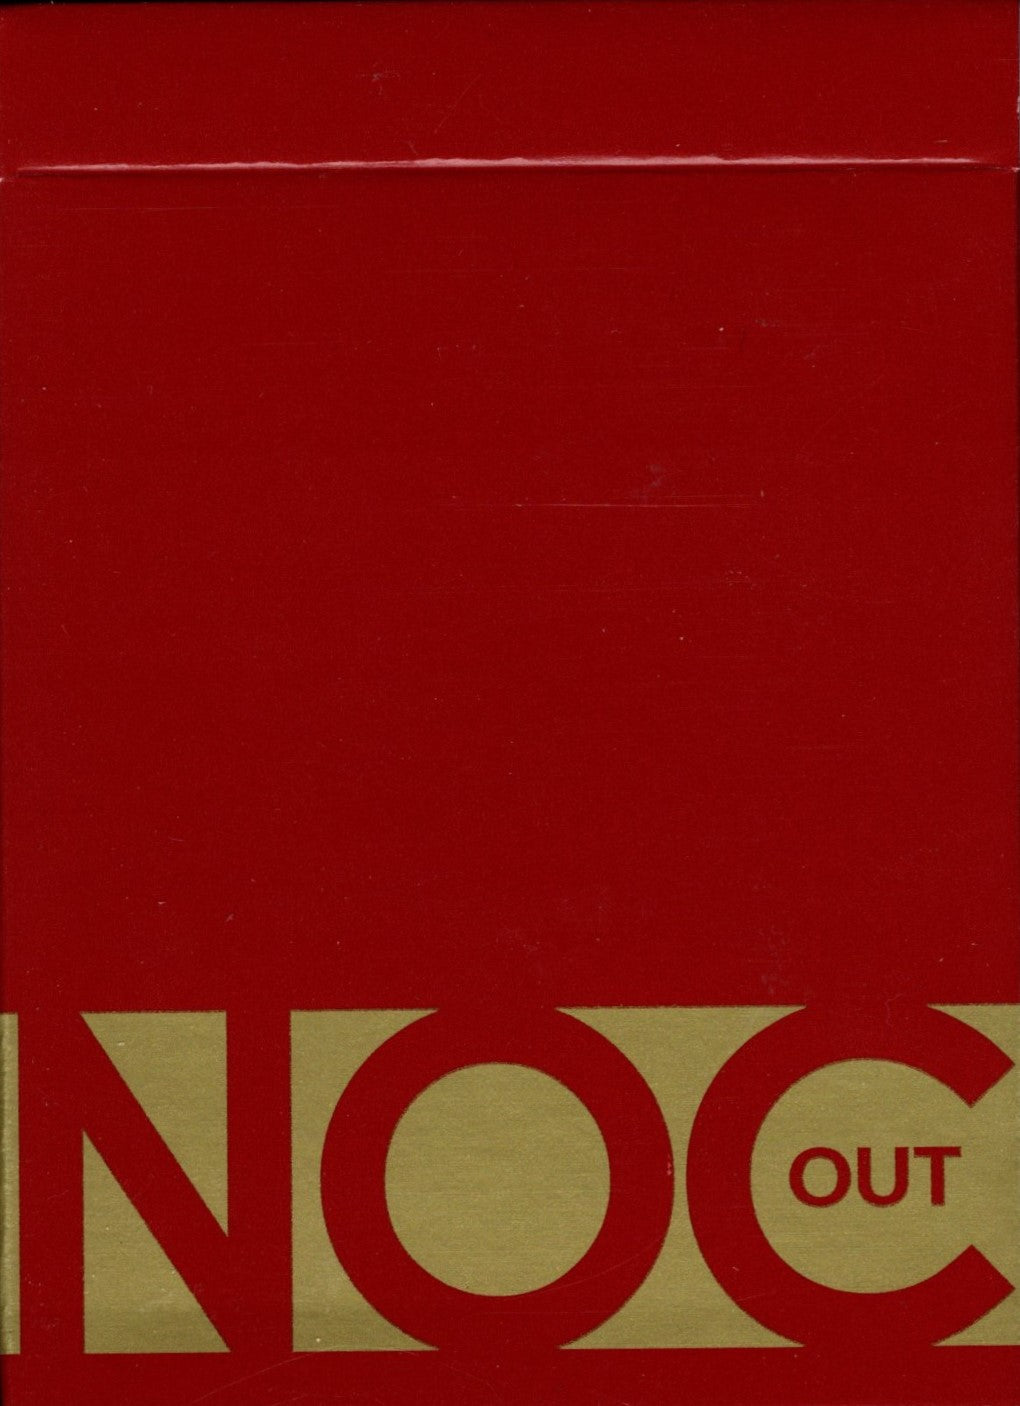 NOC Out - Red/Gold